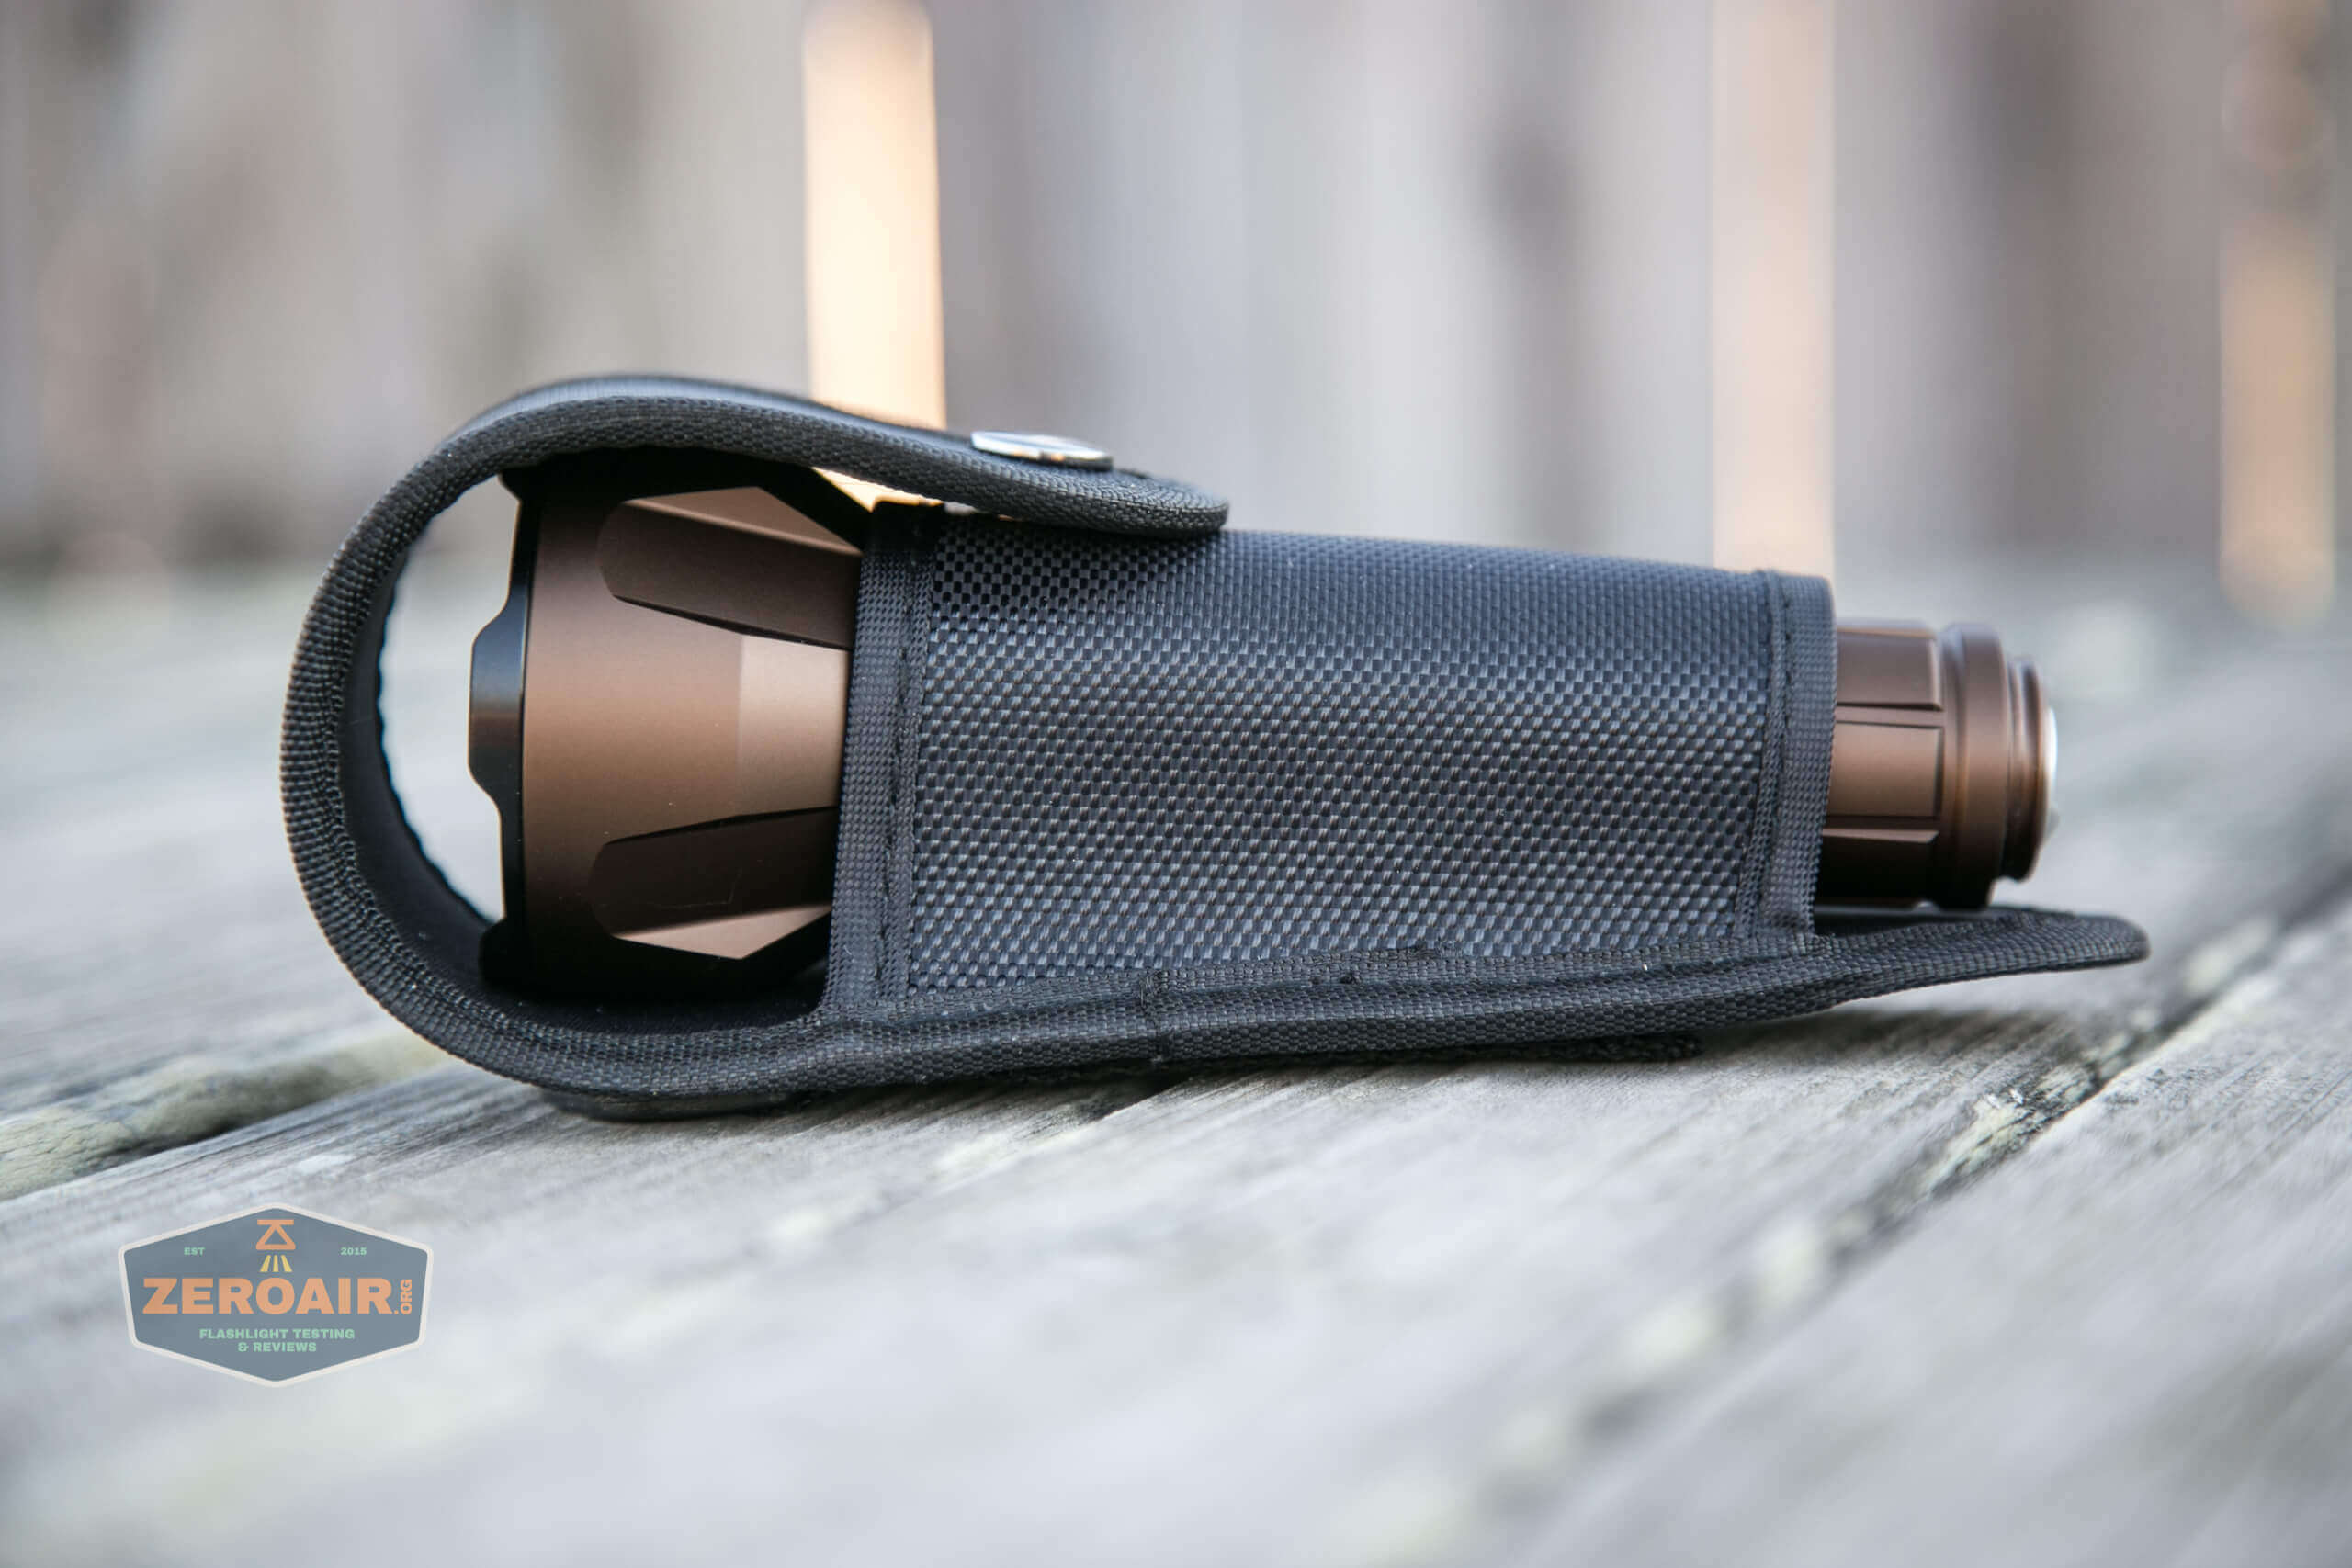 olight warrior x turbo desert tan flashlight in nylon pouch